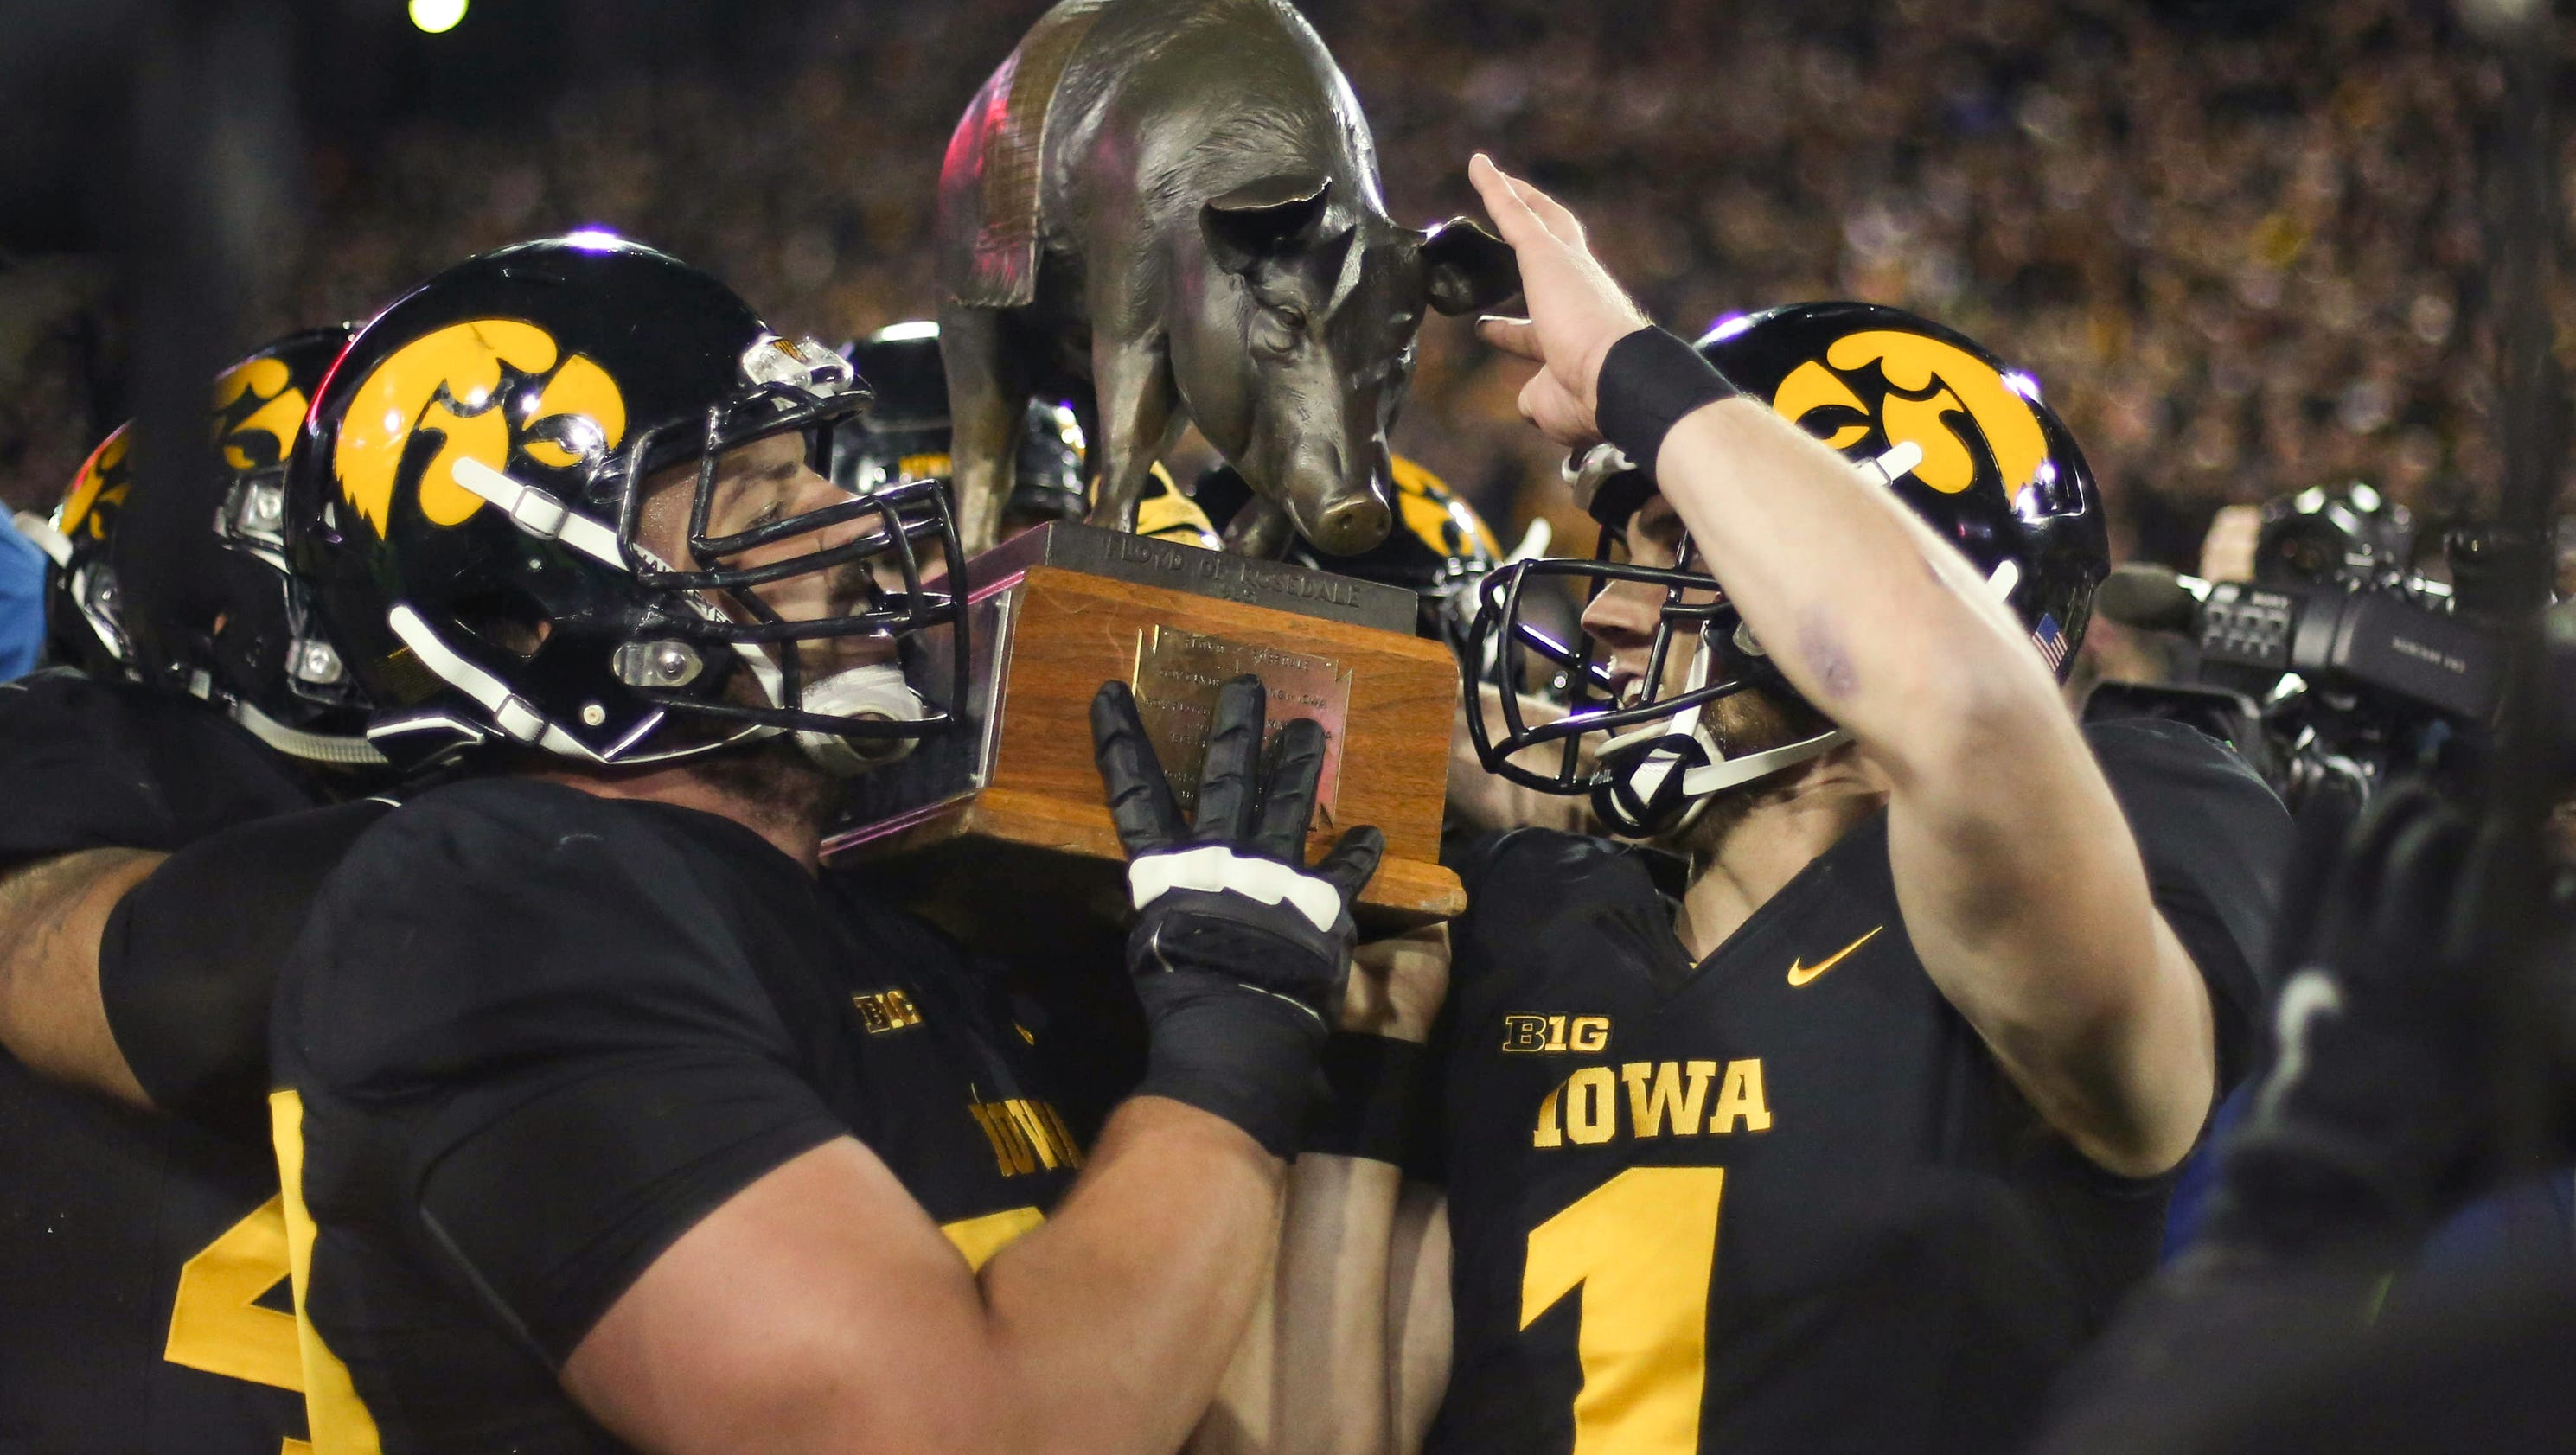 iowa football - photo #33